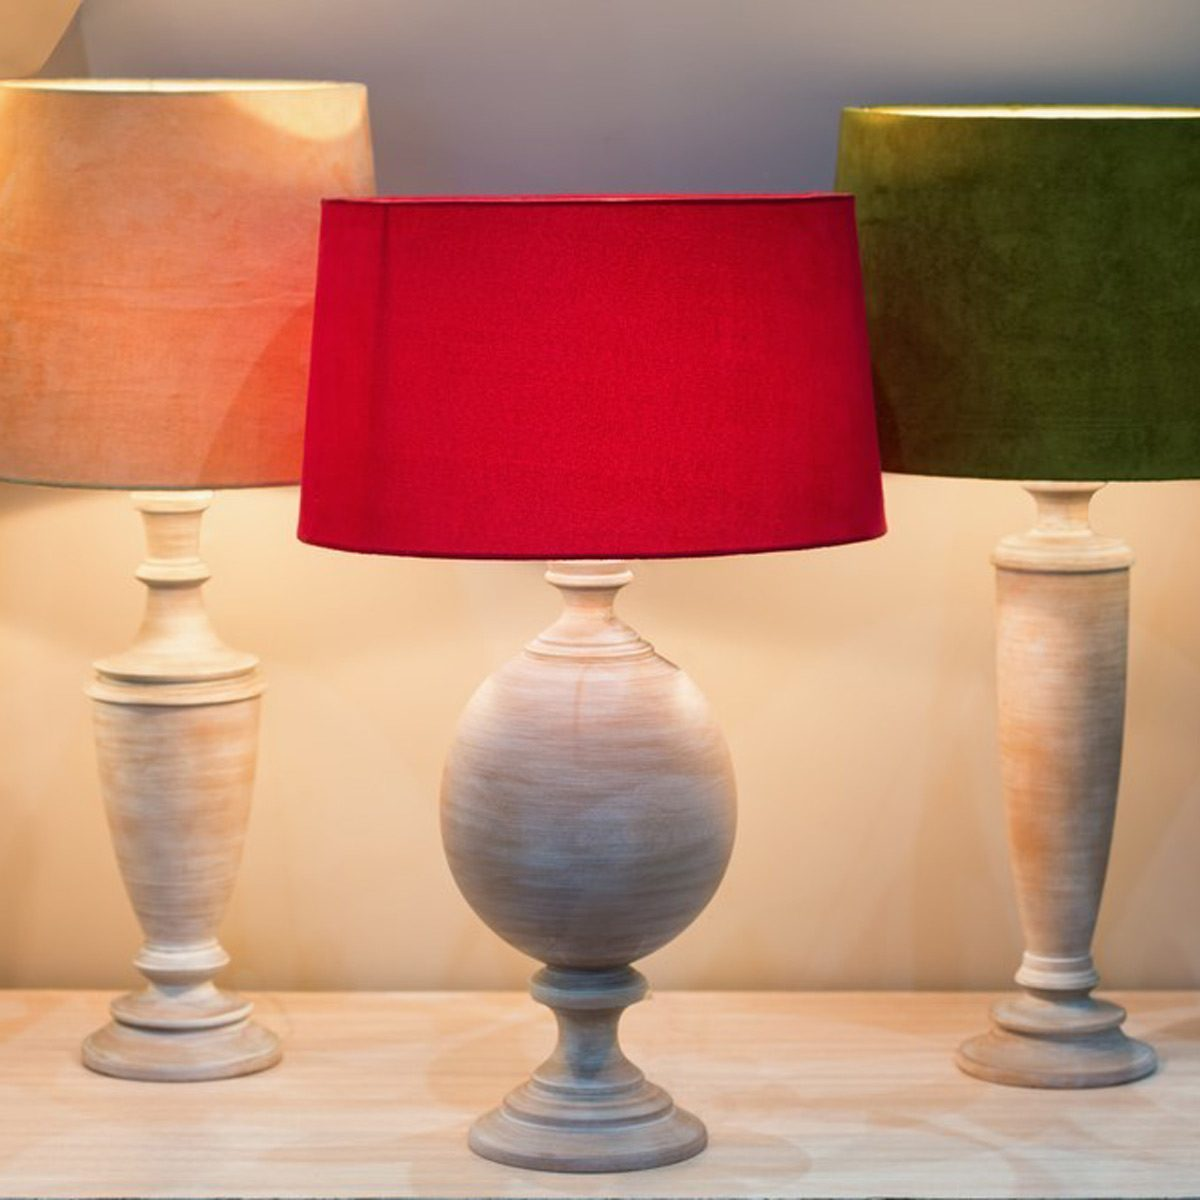 Try a New Lamp Shade